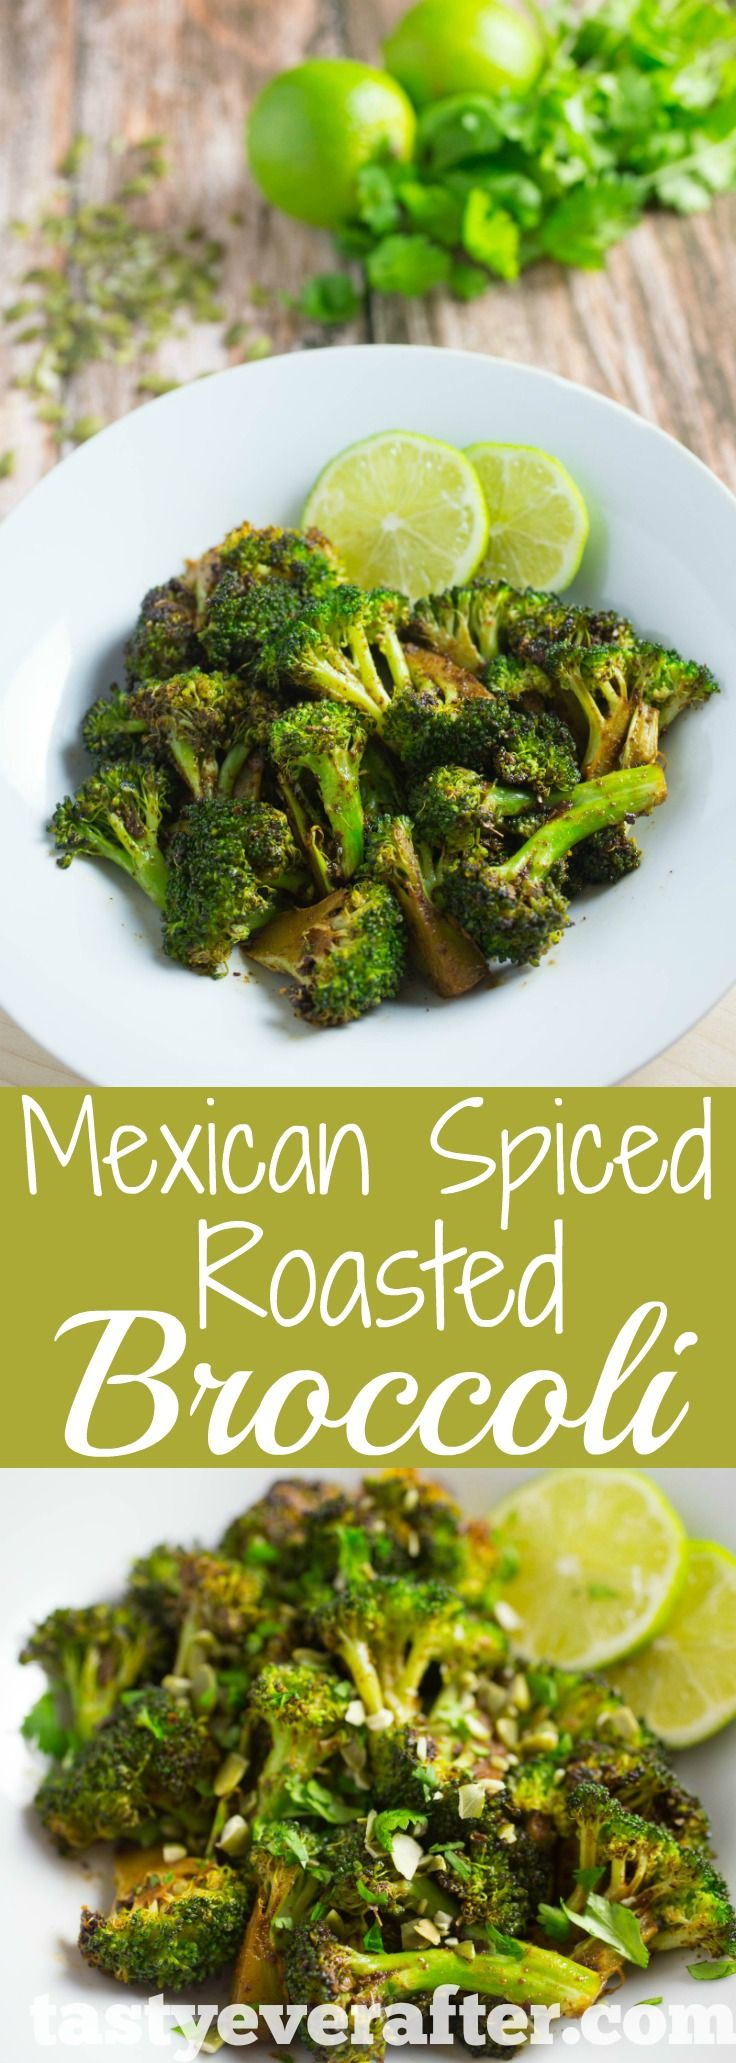 Easy and healthy Mexican spiced veggie side dish that takes less than 30 minutes to make! #Whole30 and #paleo too :)